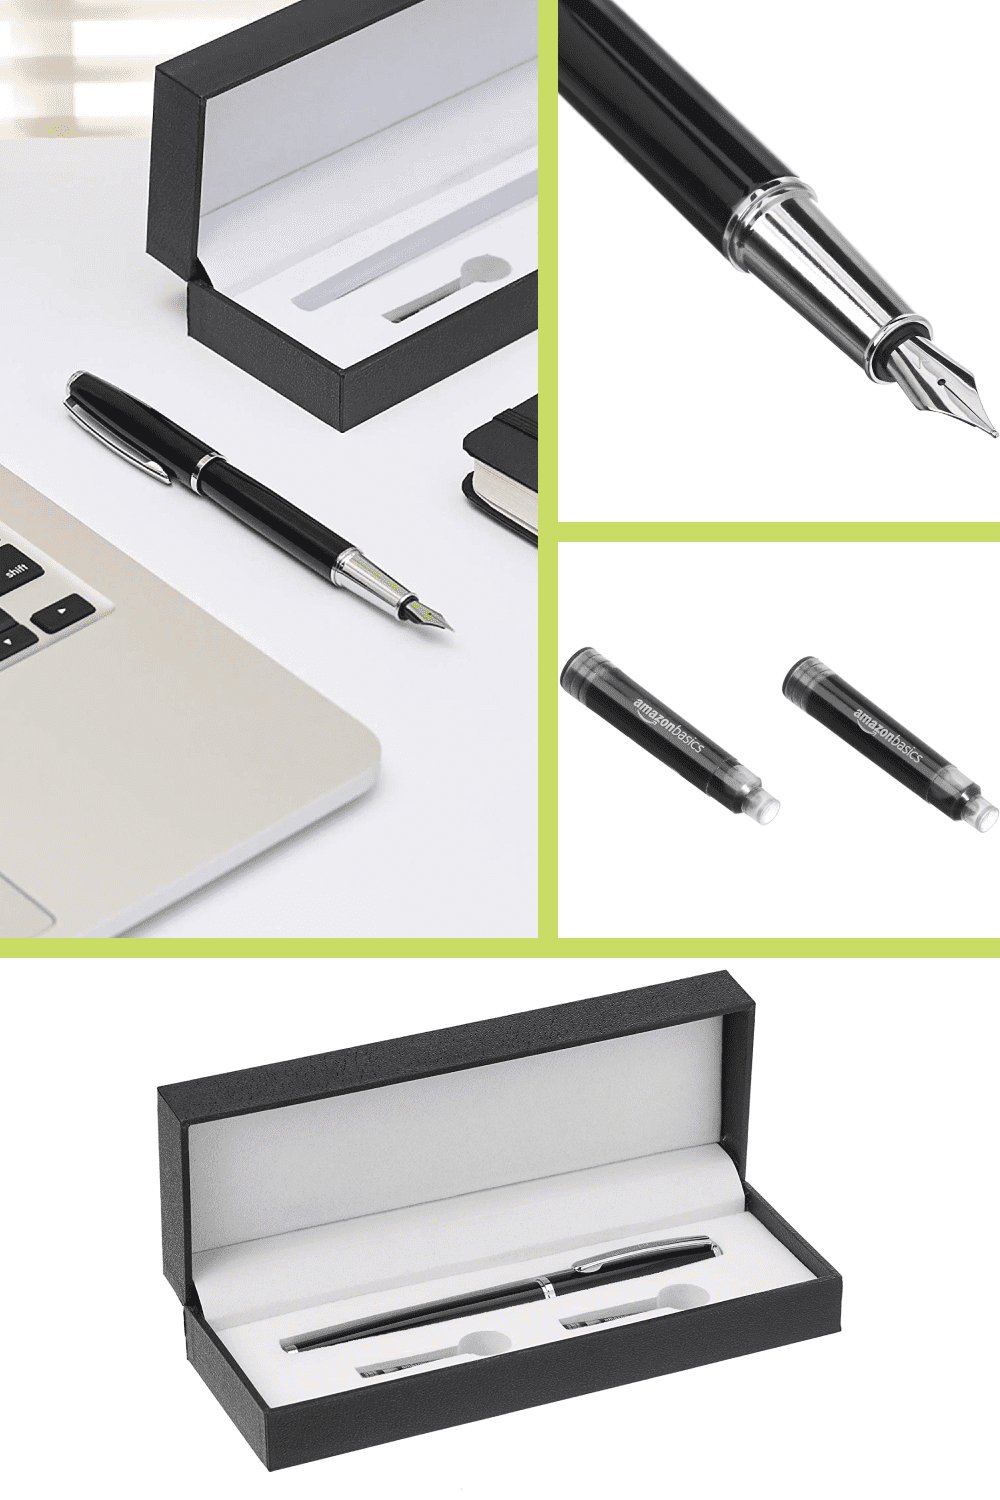 Refillable fountain pen combines a premium feel with smooth results for a luxurious writing experience.